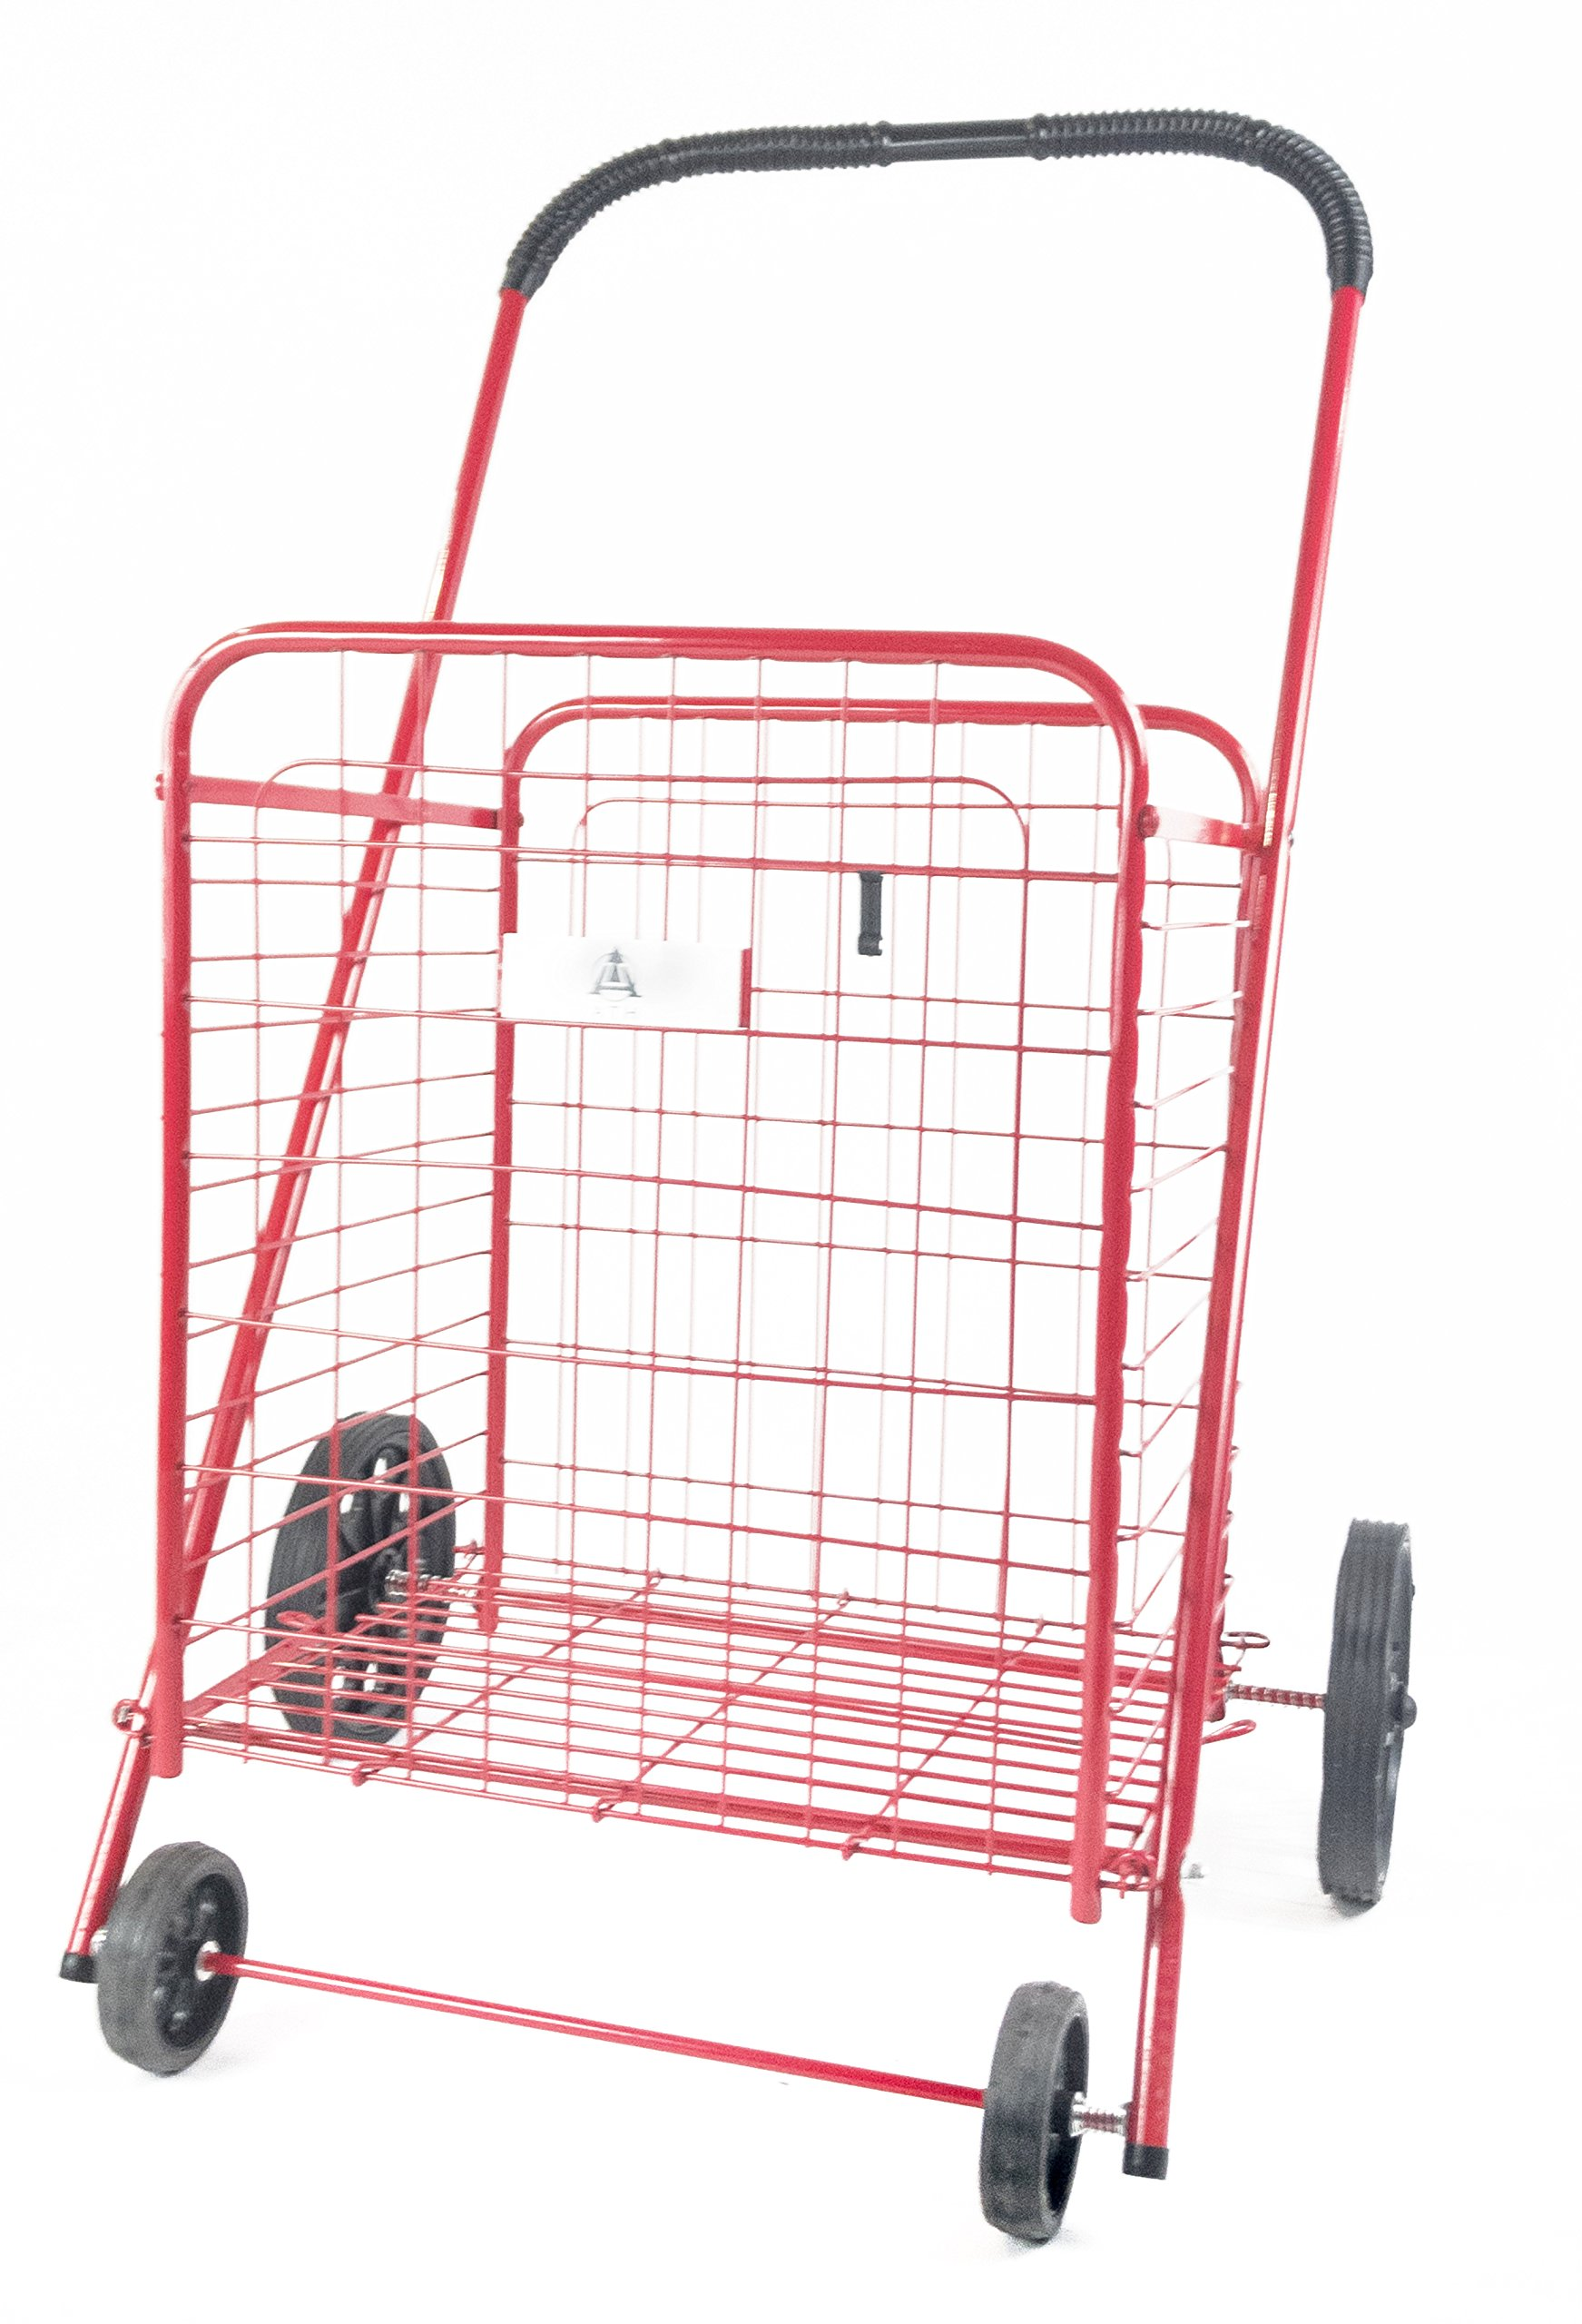 ATH Medium Deluxe Rolling Utility / Shopping Cart - Stowable Folding Heavy Duty Cart with Rubber Wheels For Haul Laundry, Groceries, Toys, Sports Equipment, Red